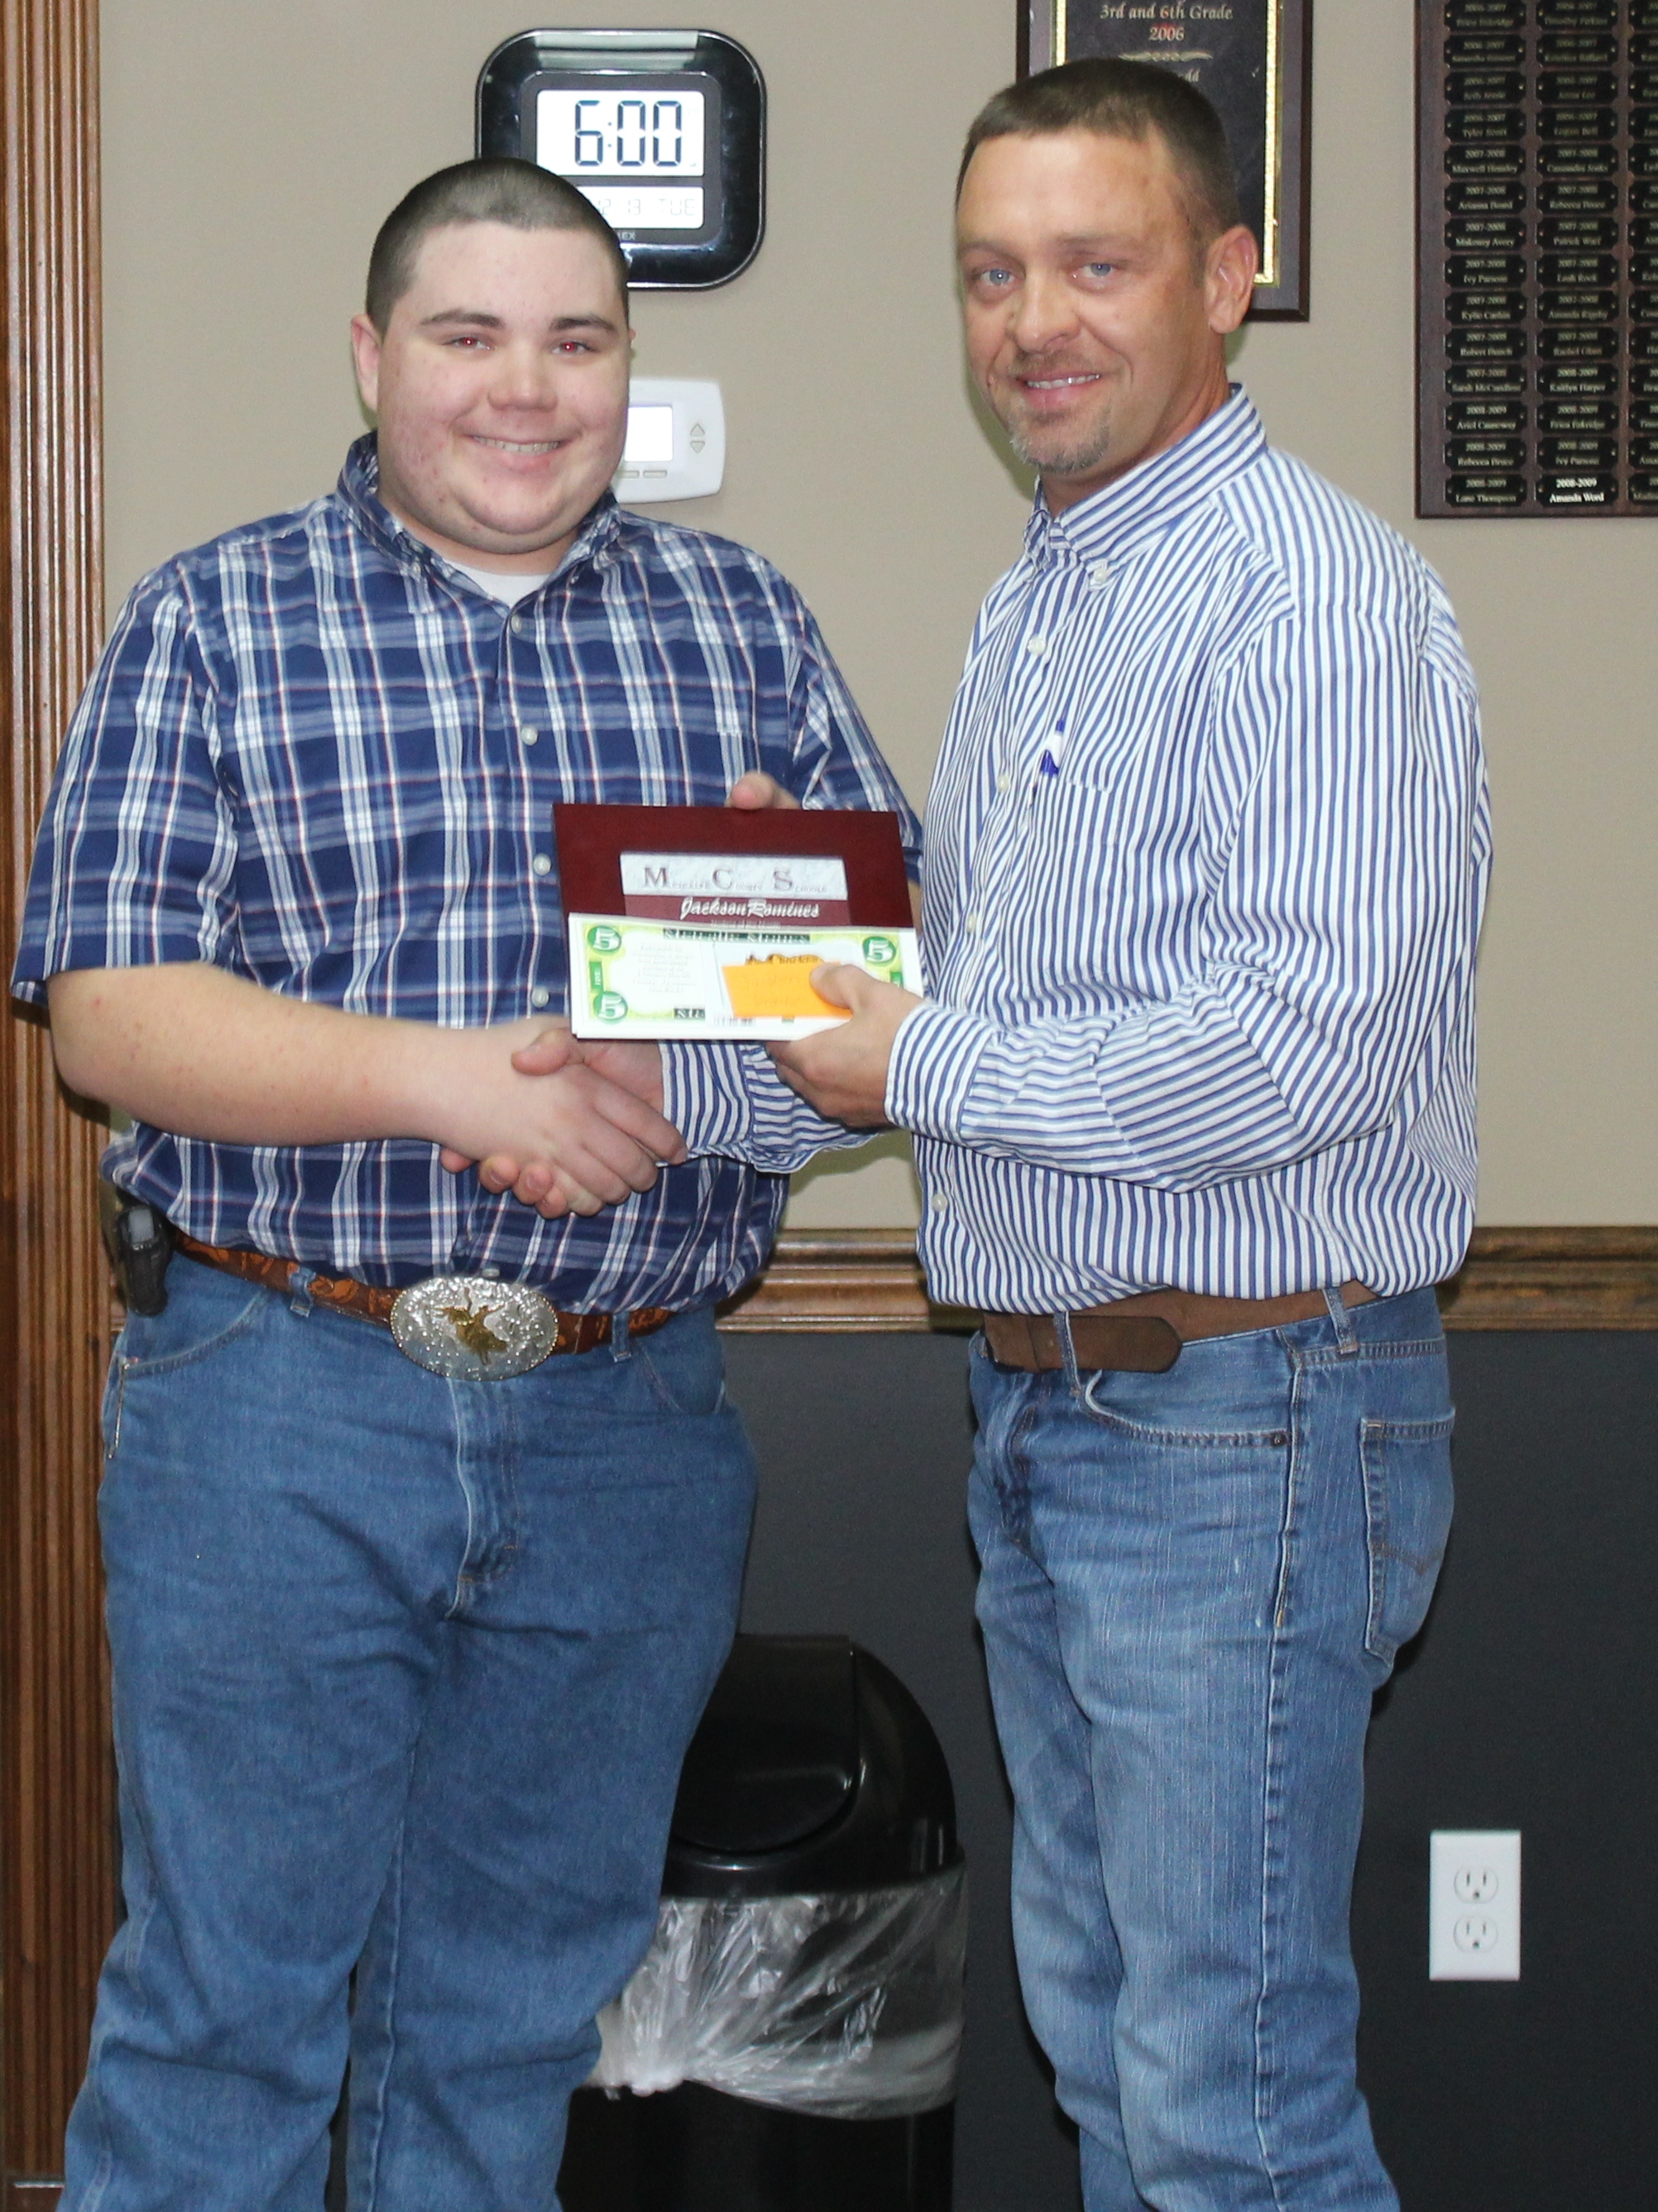 Jackson Romines Receives Student of the Month